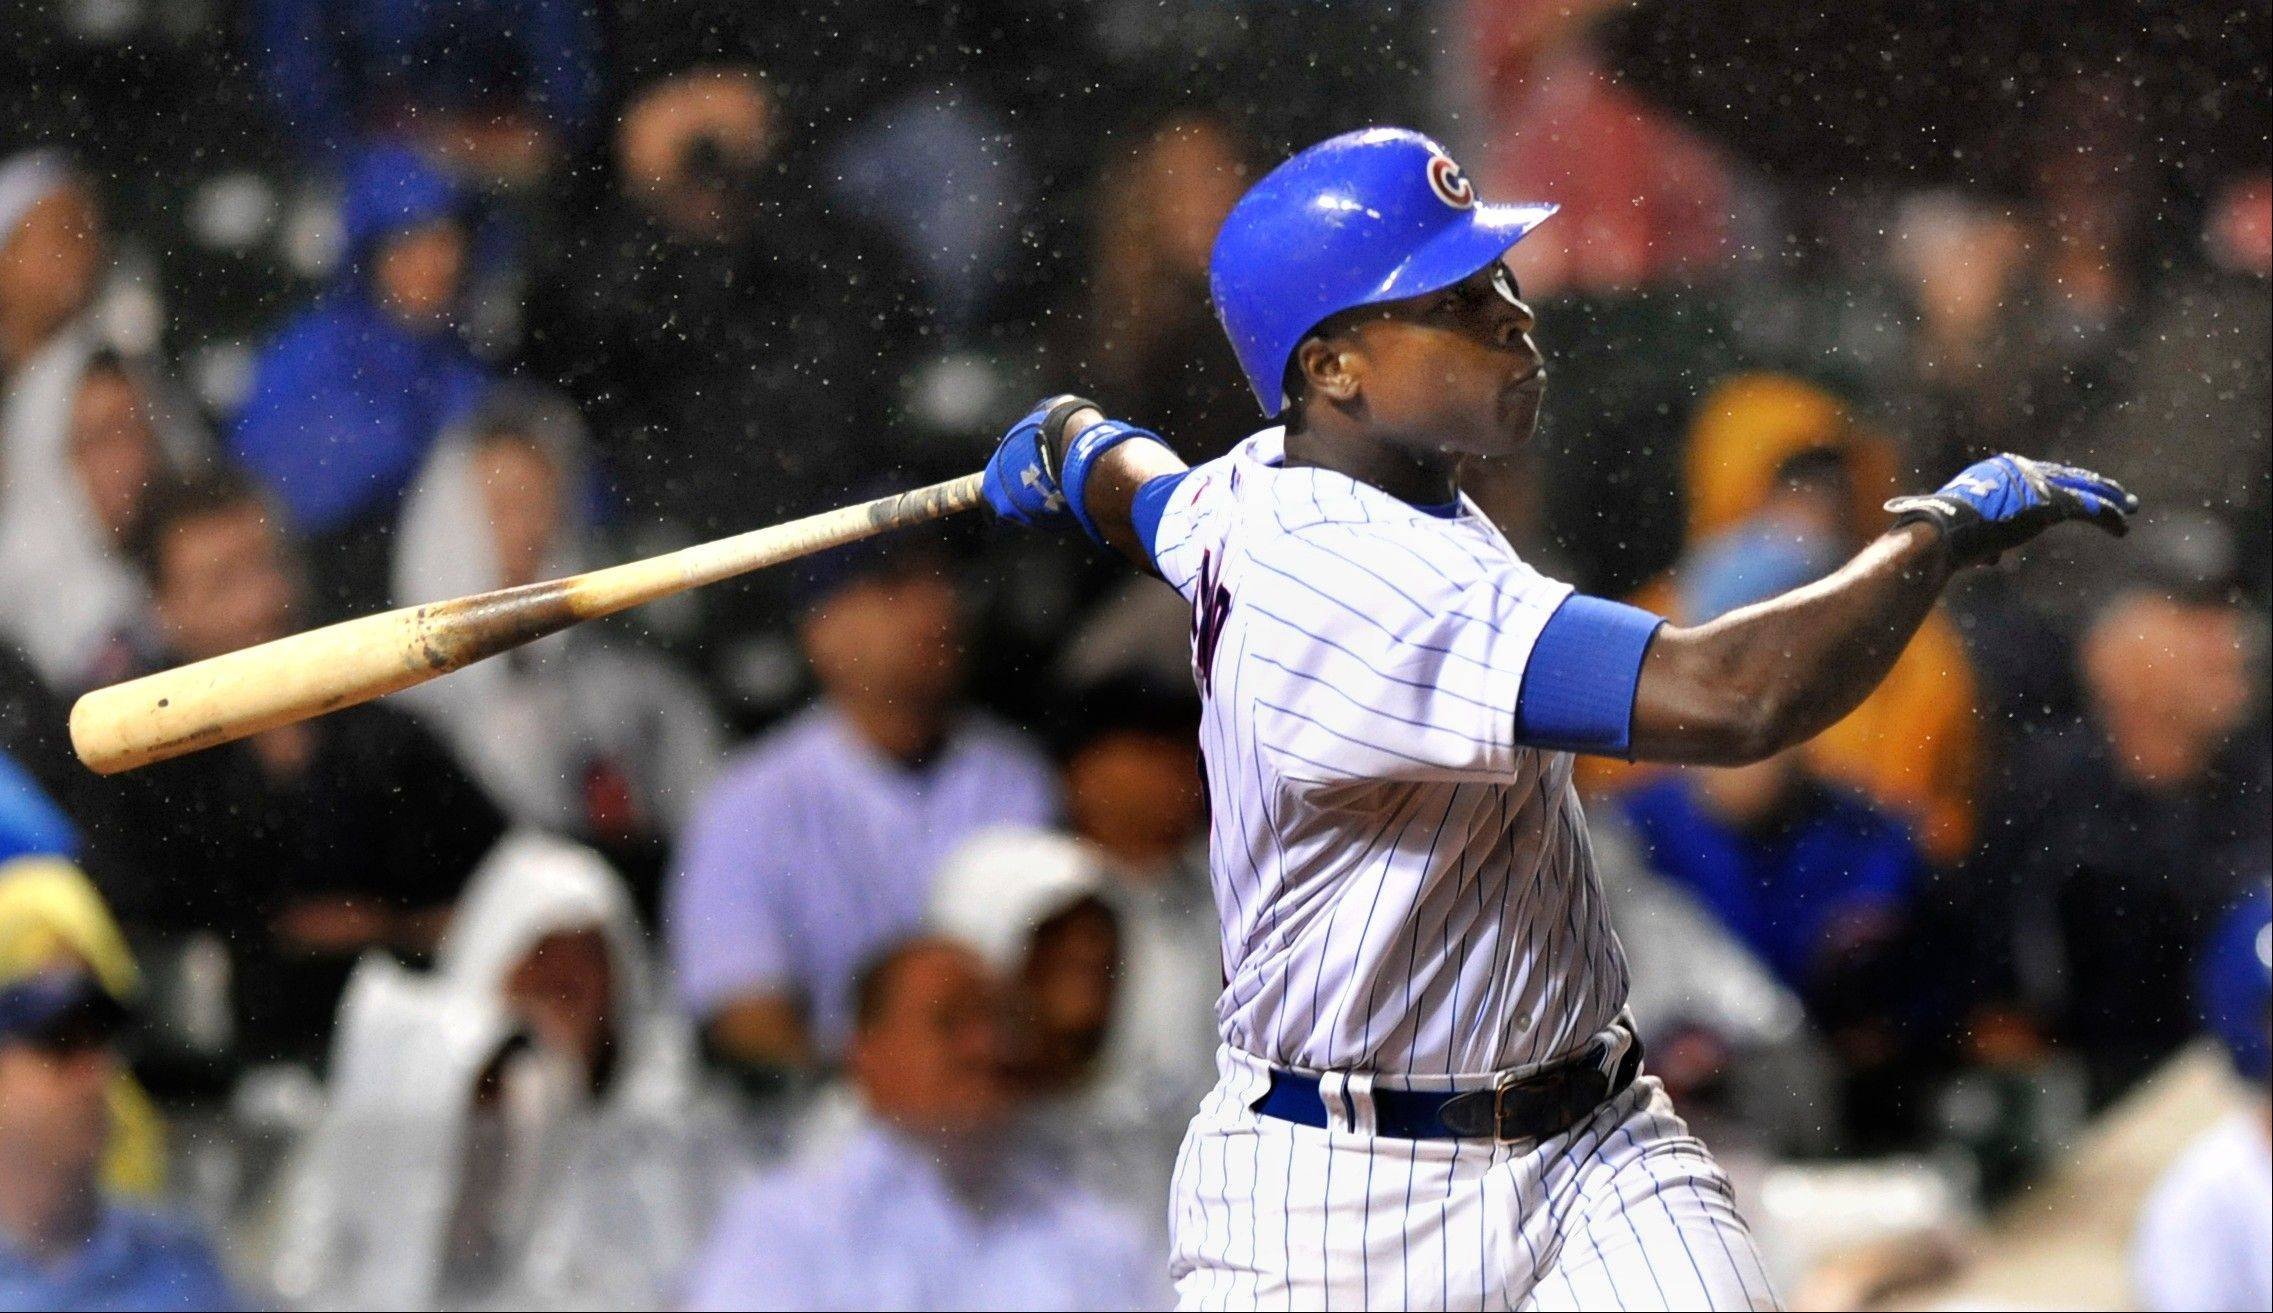 Chicago Cubs' Alfonso Soriano watches his two run home run against the Cincinnati Reds in the eighth inning during a MLB baseball game in Chicago, Thursday, Aug. 9, 2012.